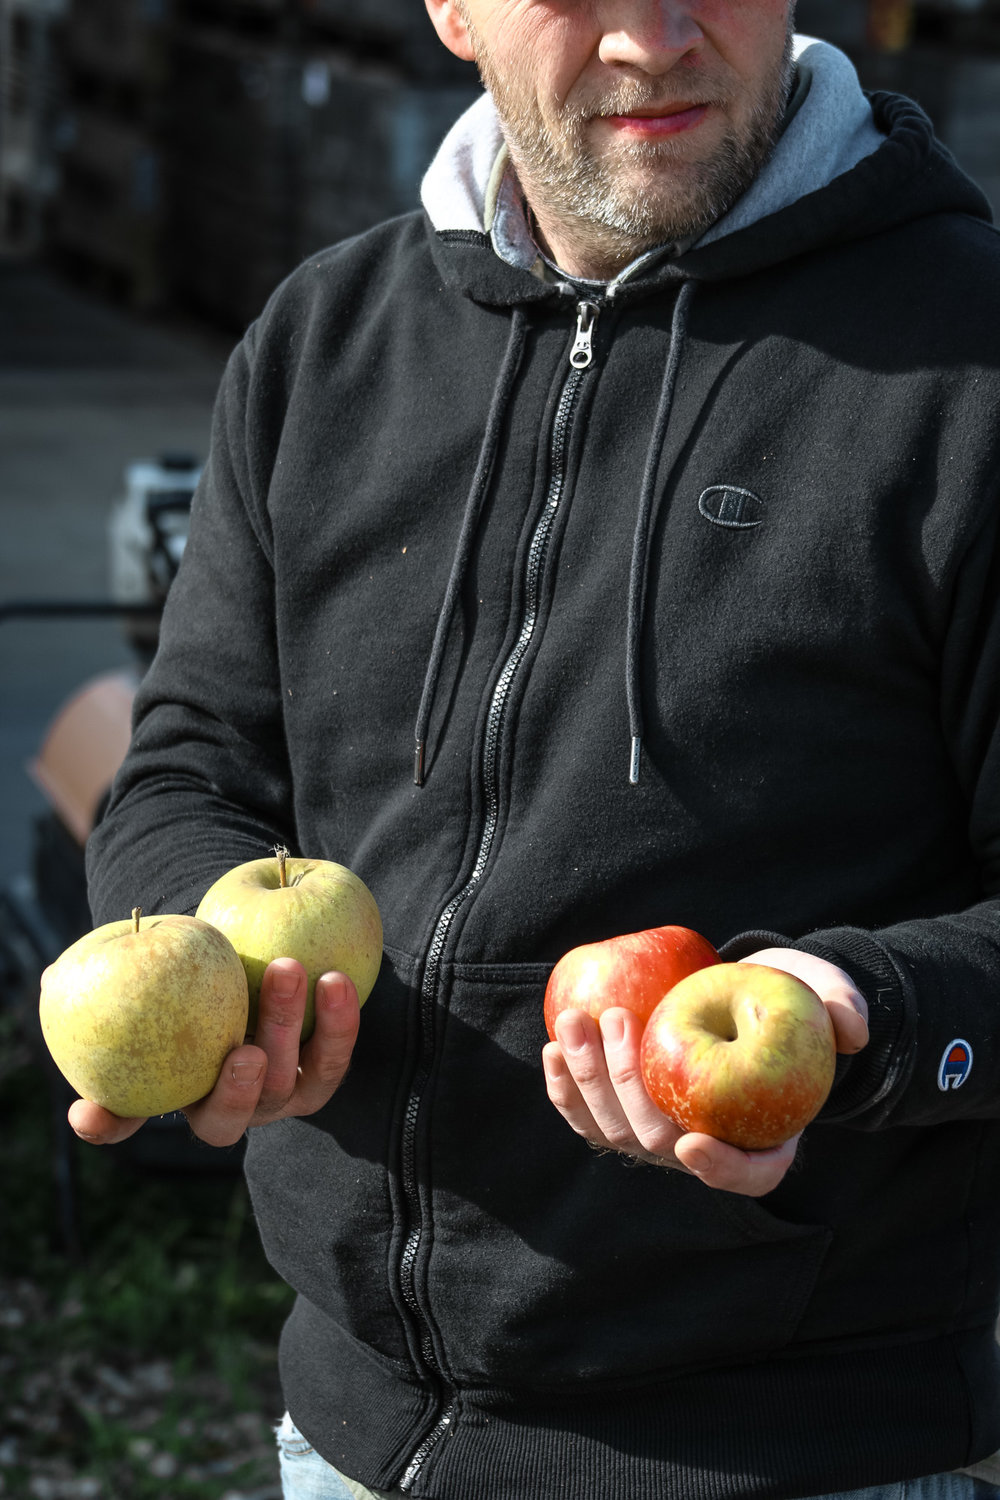 Cidermaker David Crawford holds Suncrisp apples in his right hand, and Swiss Gourmet in his right.